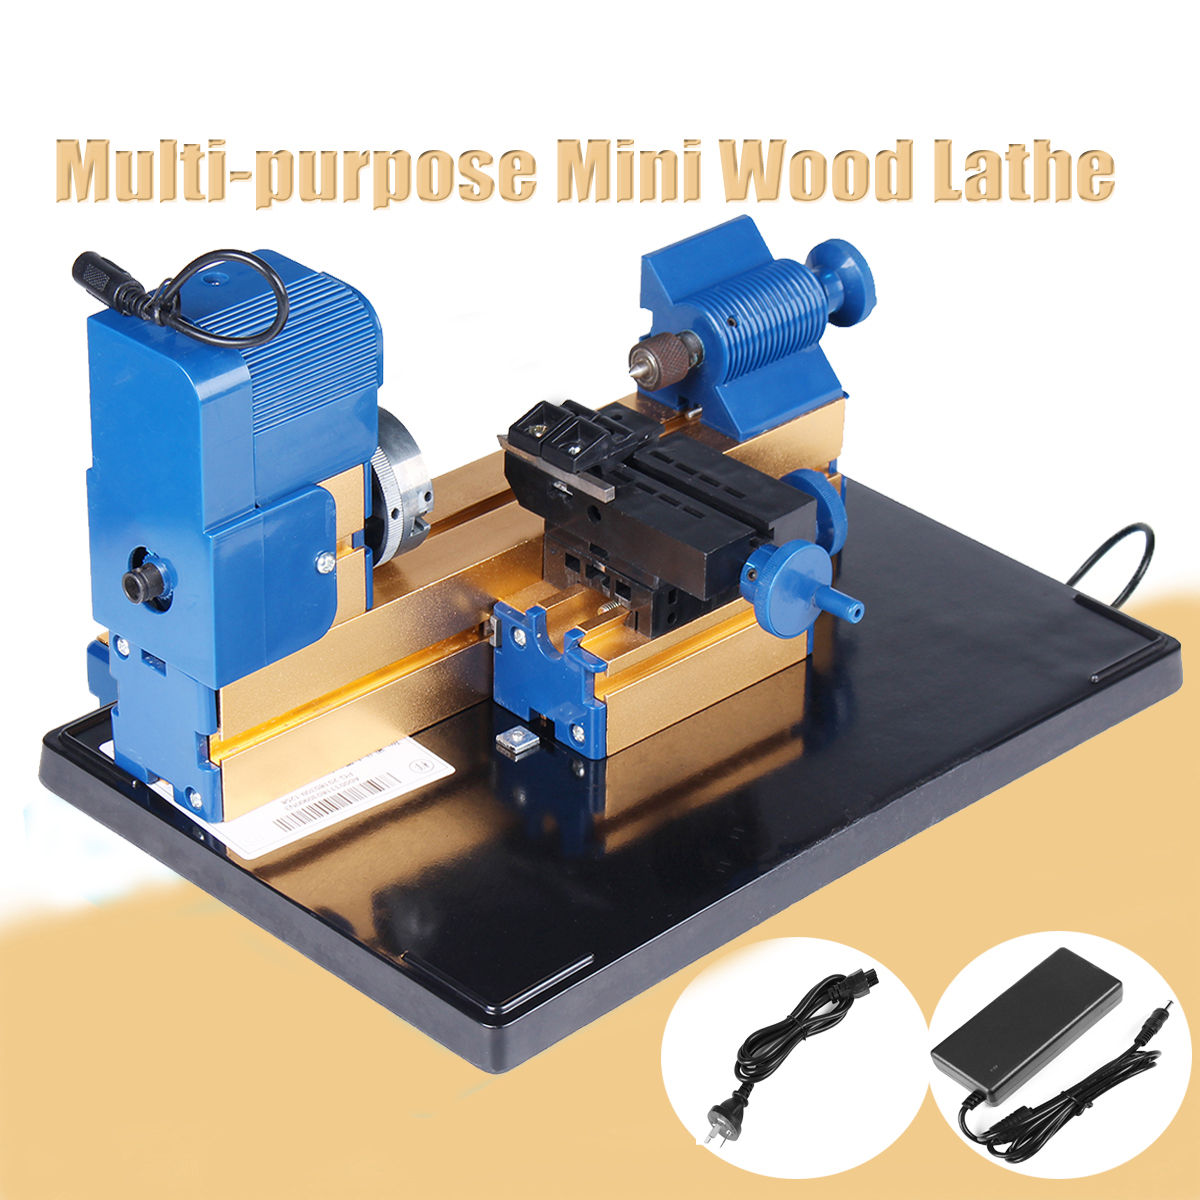 DC 12V 24W 2A Multifunction Mini Wood Lathe Motorized Jig-saw Bead Grinder Driller Woodworking Turning Cutting Bead ToolDC 12V 24W 2A Multifunction Mini Wood Lathe Motorized Jig-saw Bead Grinder Driller Woodworking Turning Cutting Bead Tool